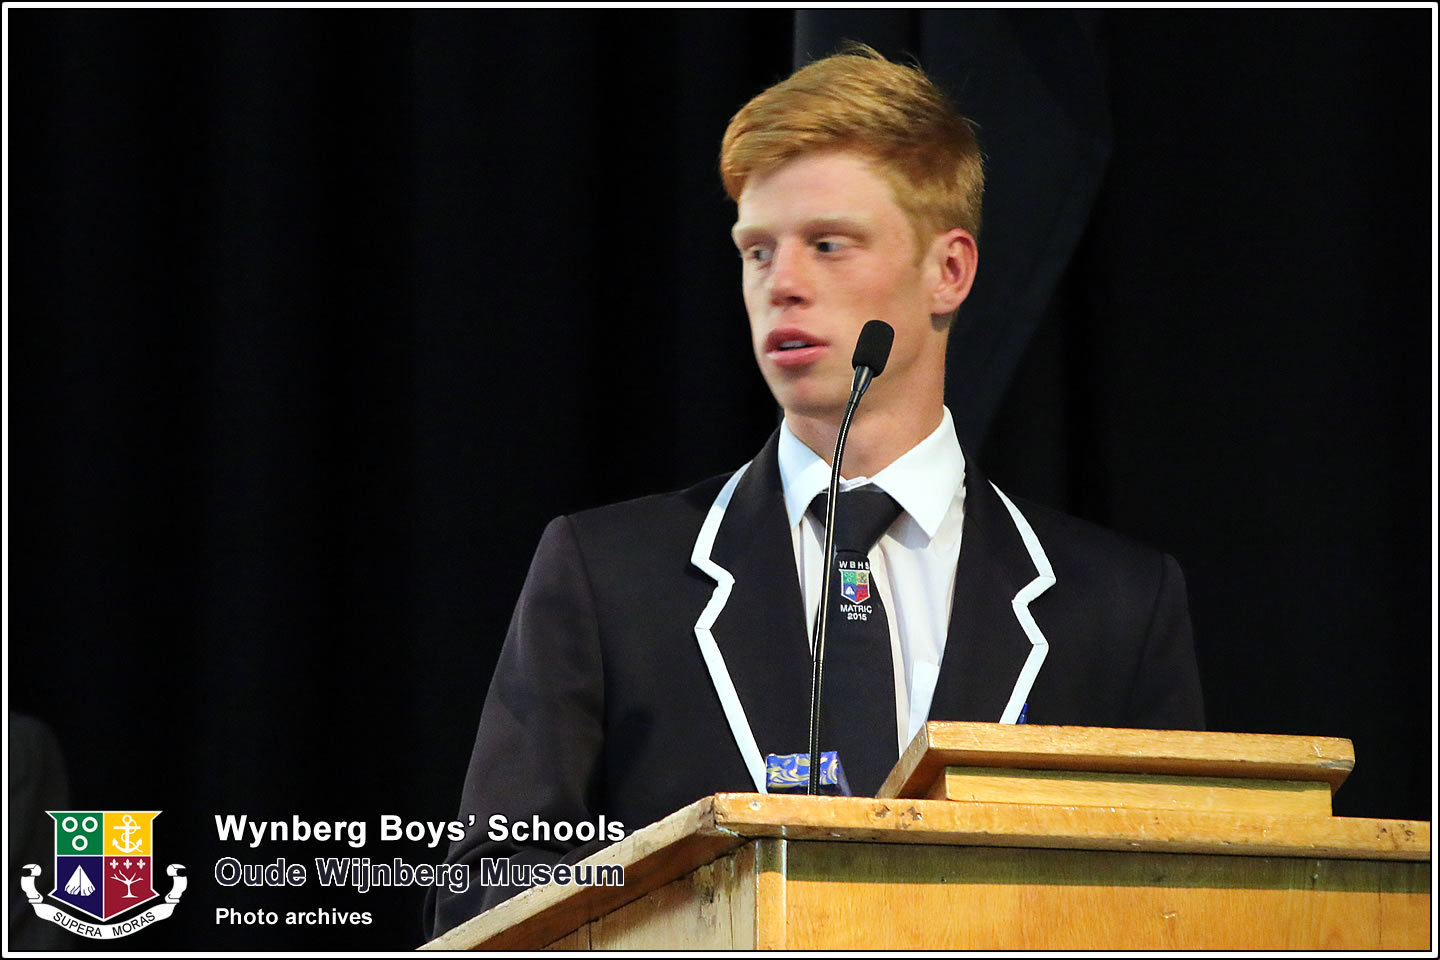 Future Cobras Wicket Keeper: Kyle Verreynne, Matric 2015